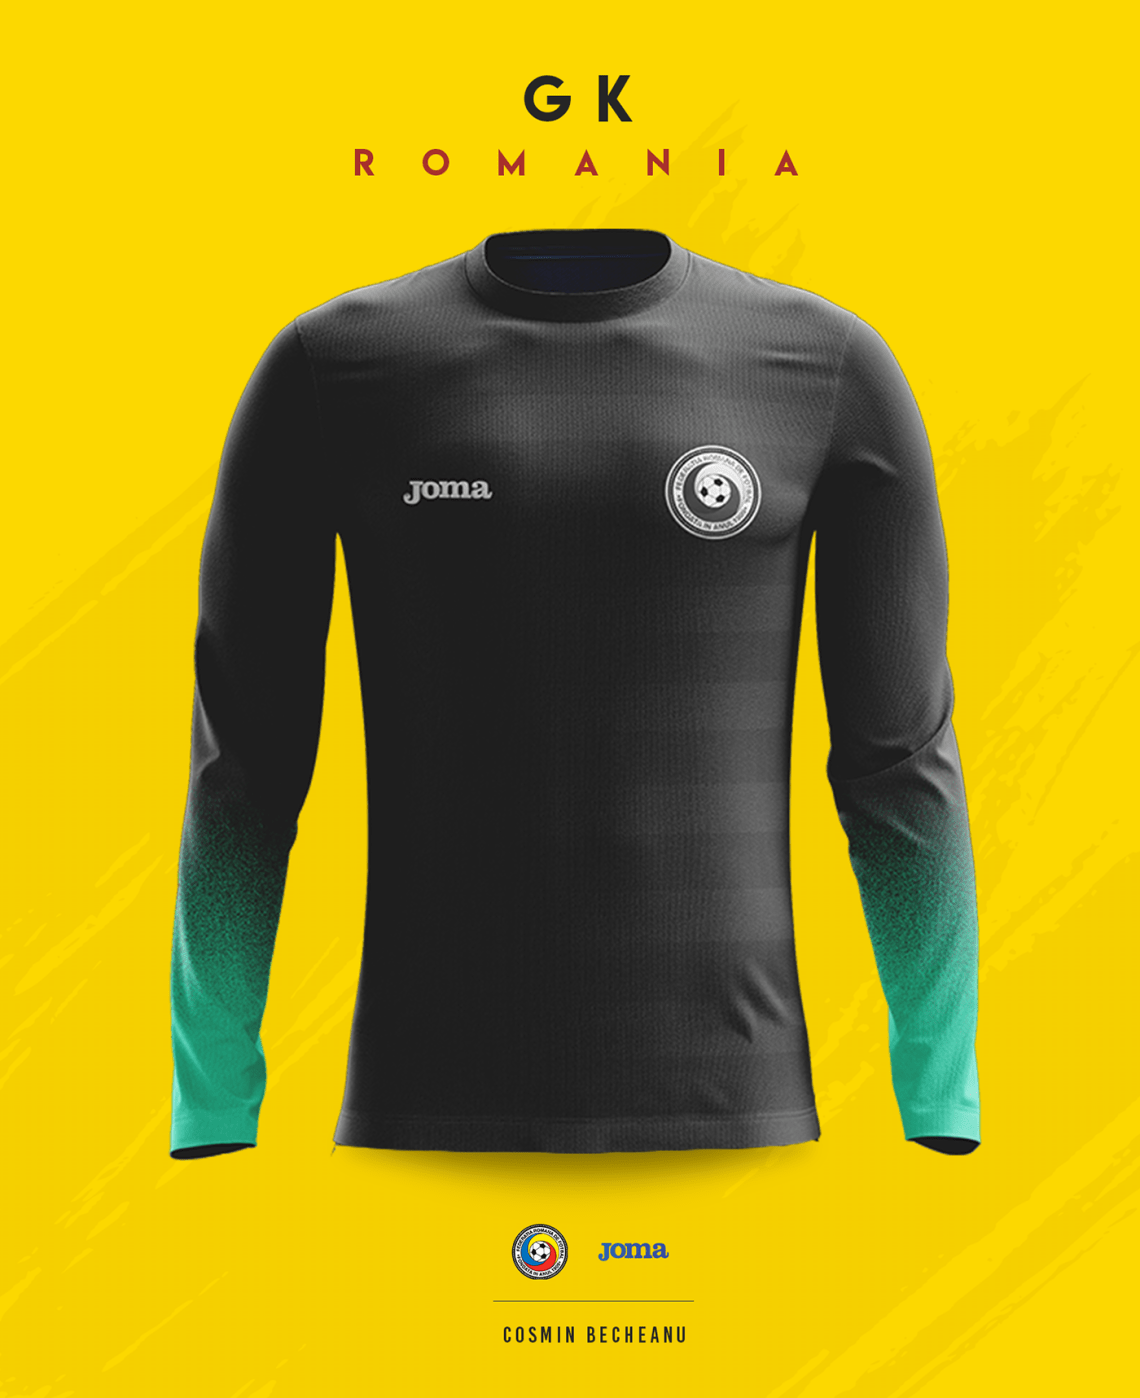 Download Romania - JOMA® 2018 Concept on Behance